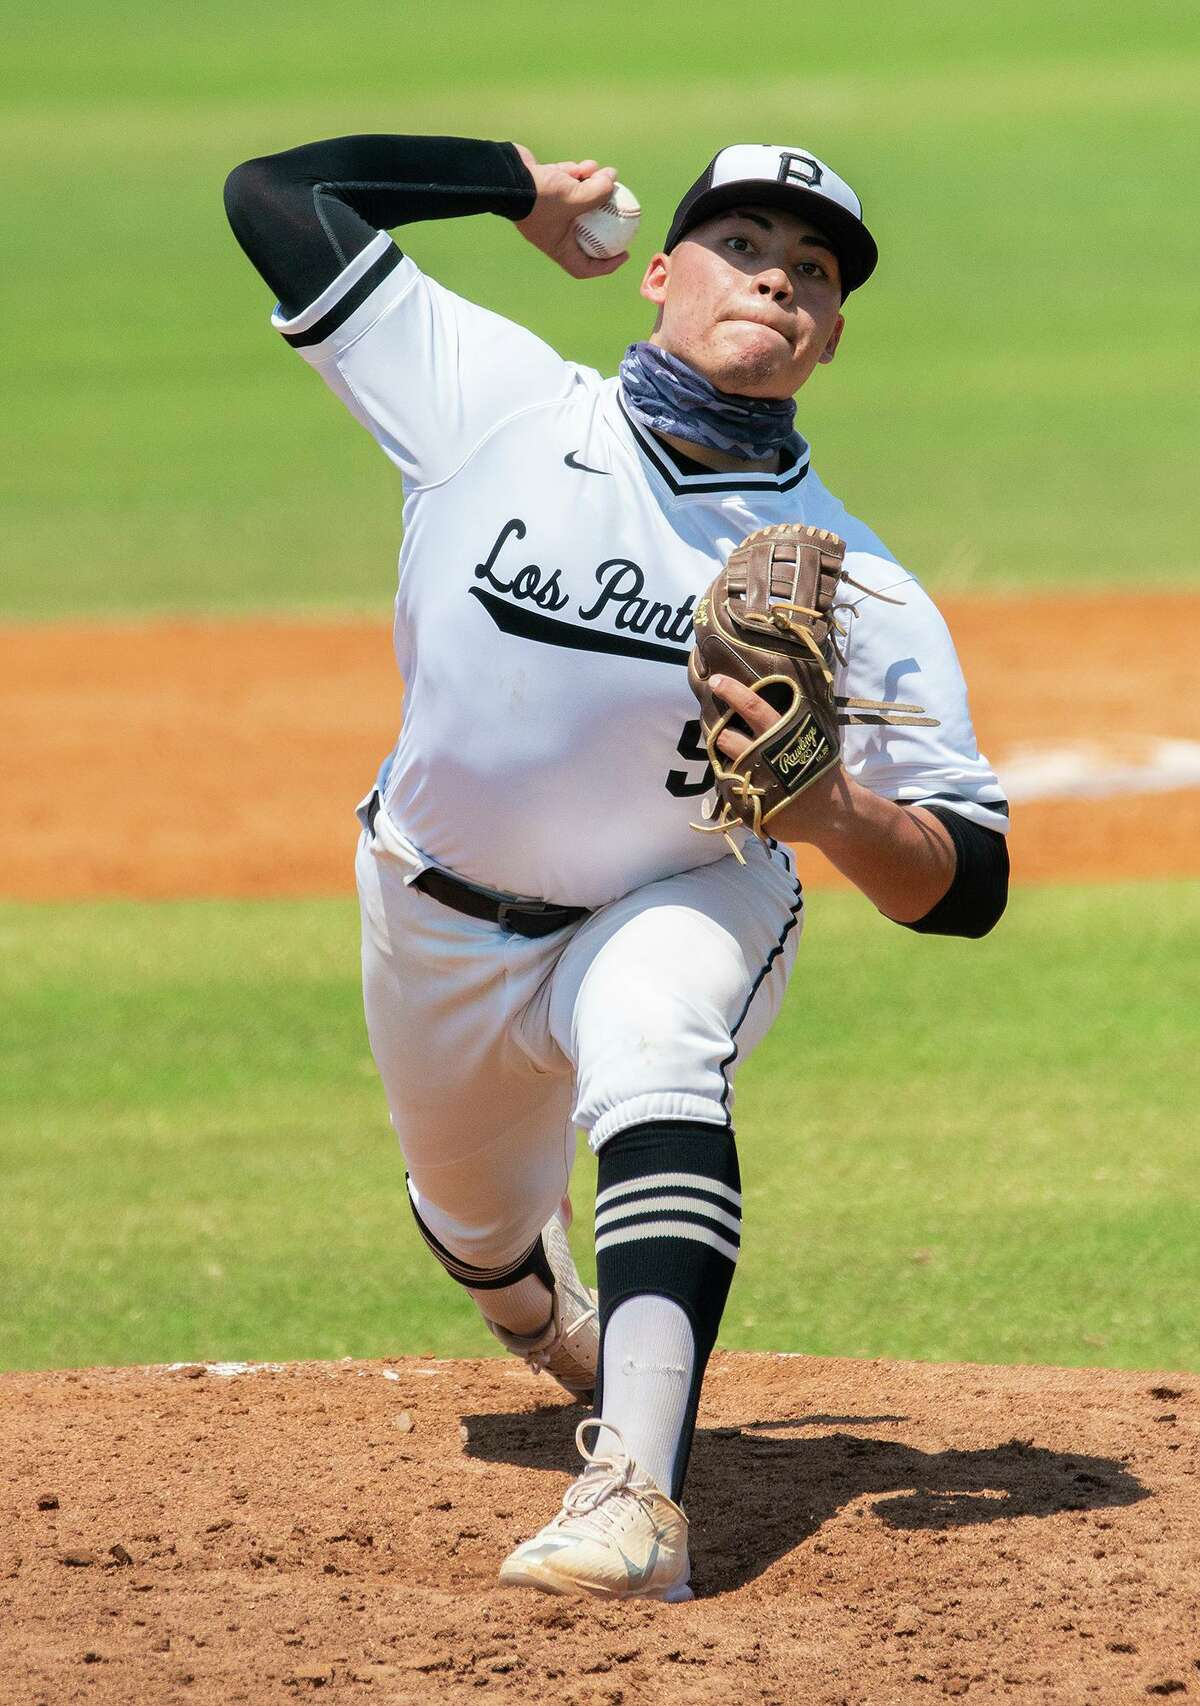 Greg Campos and United South swept San Antonio Harlan on Saturday to advance in the state playoffs.